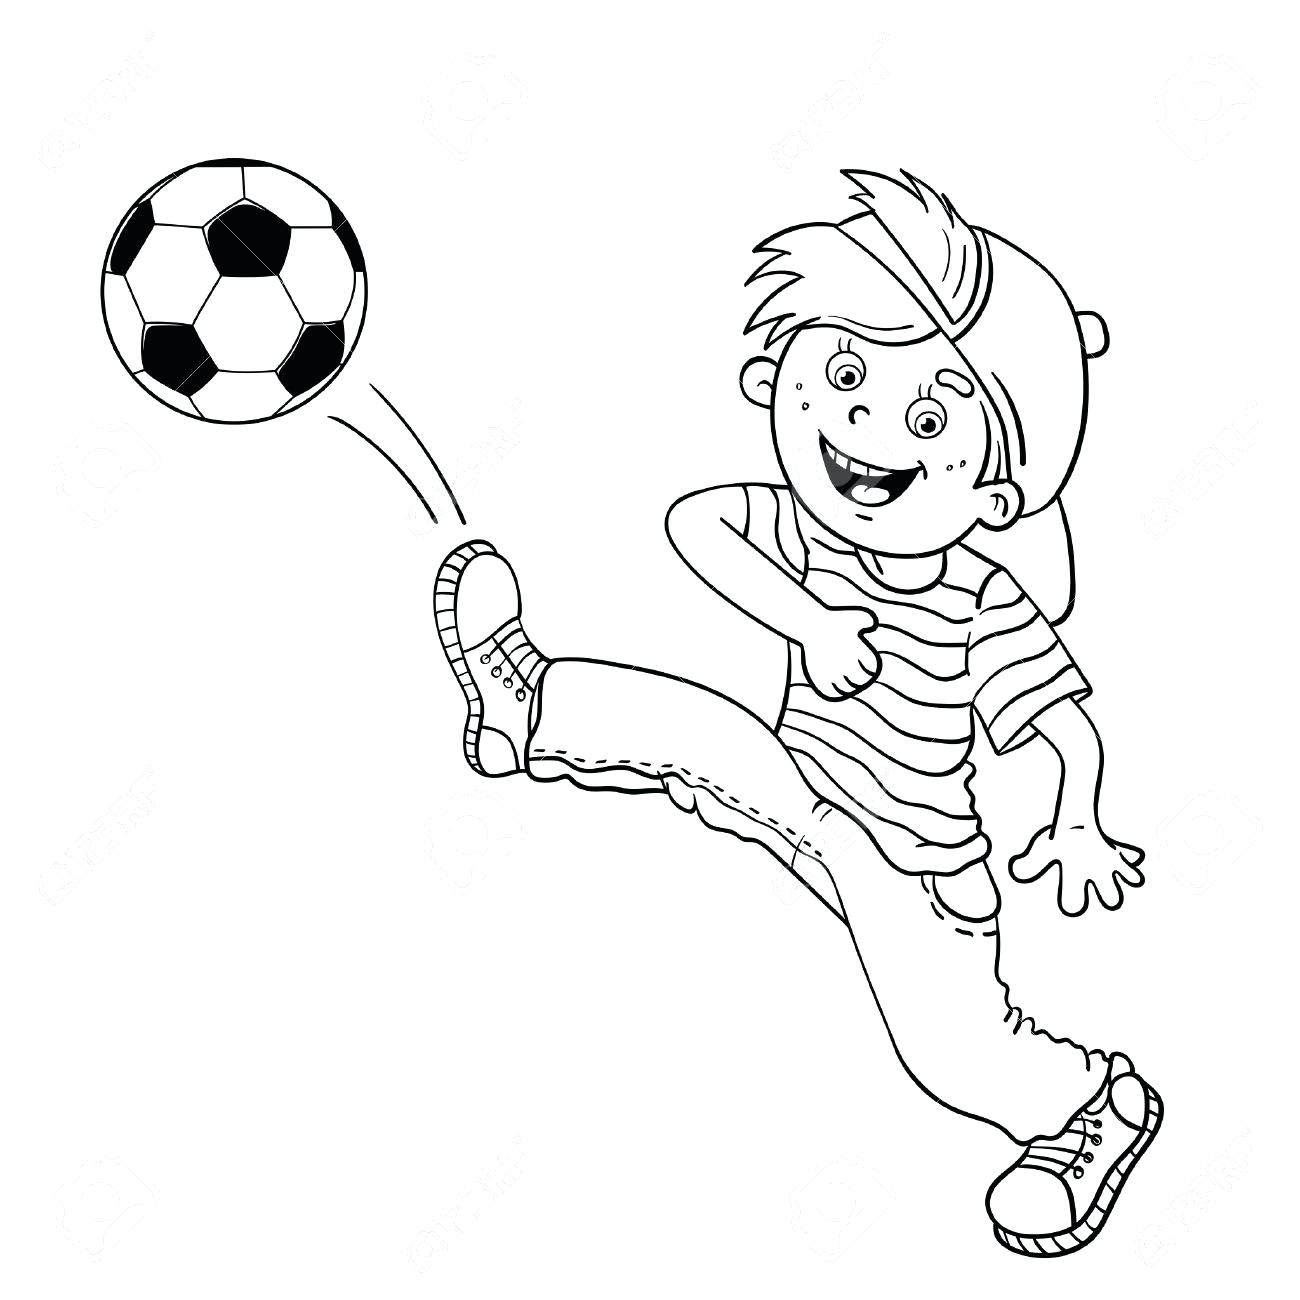 1300x1300 Coloring Coloring Pages Of Soccer Kids Kick Ball Playing Football